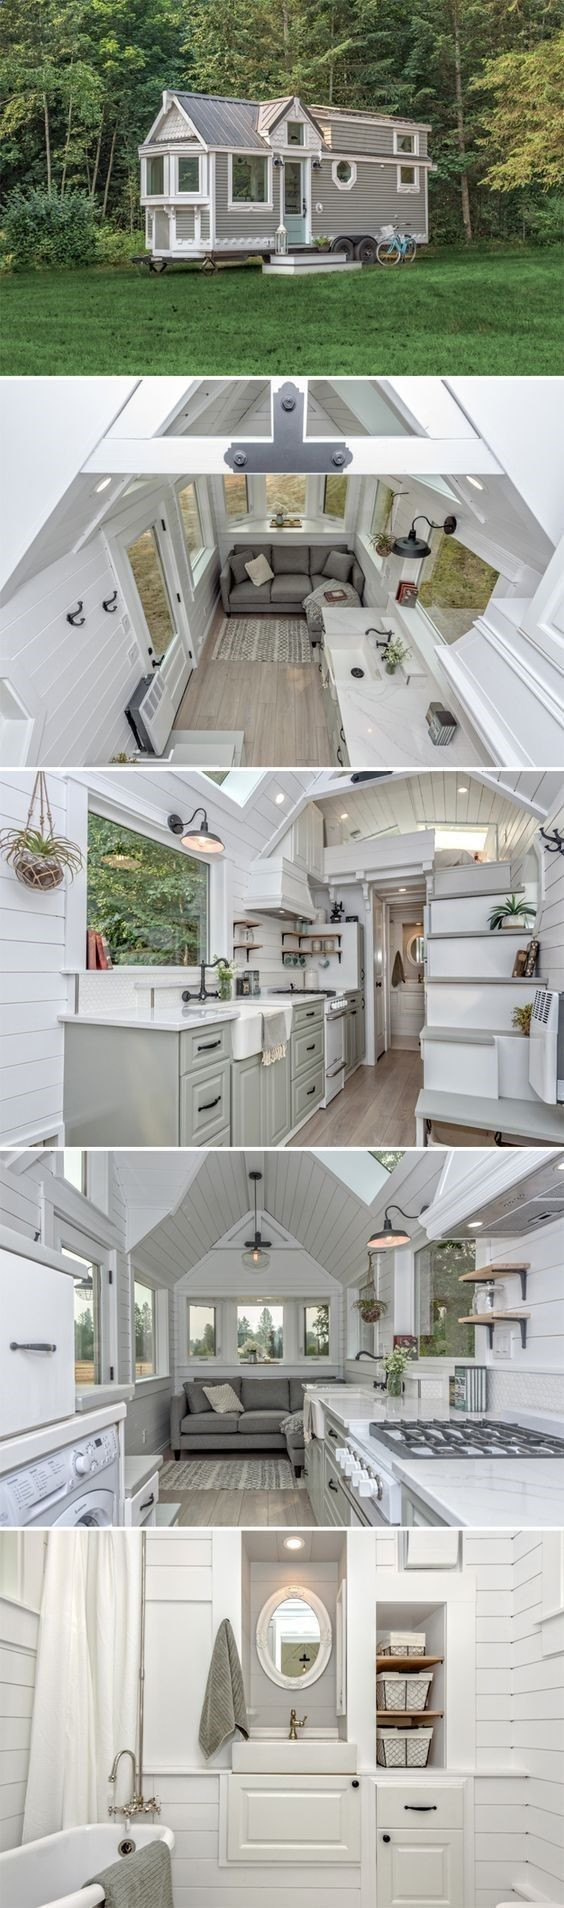 "praters hardwood flooring chattanooga of 65 best decoracia""n y organizacia""n images on pinterest for the home for shed diy shed plans the heritage is the debut tiny house built by oliver stankiewicz and cera bollo at summit tiny homes located in armstrong"